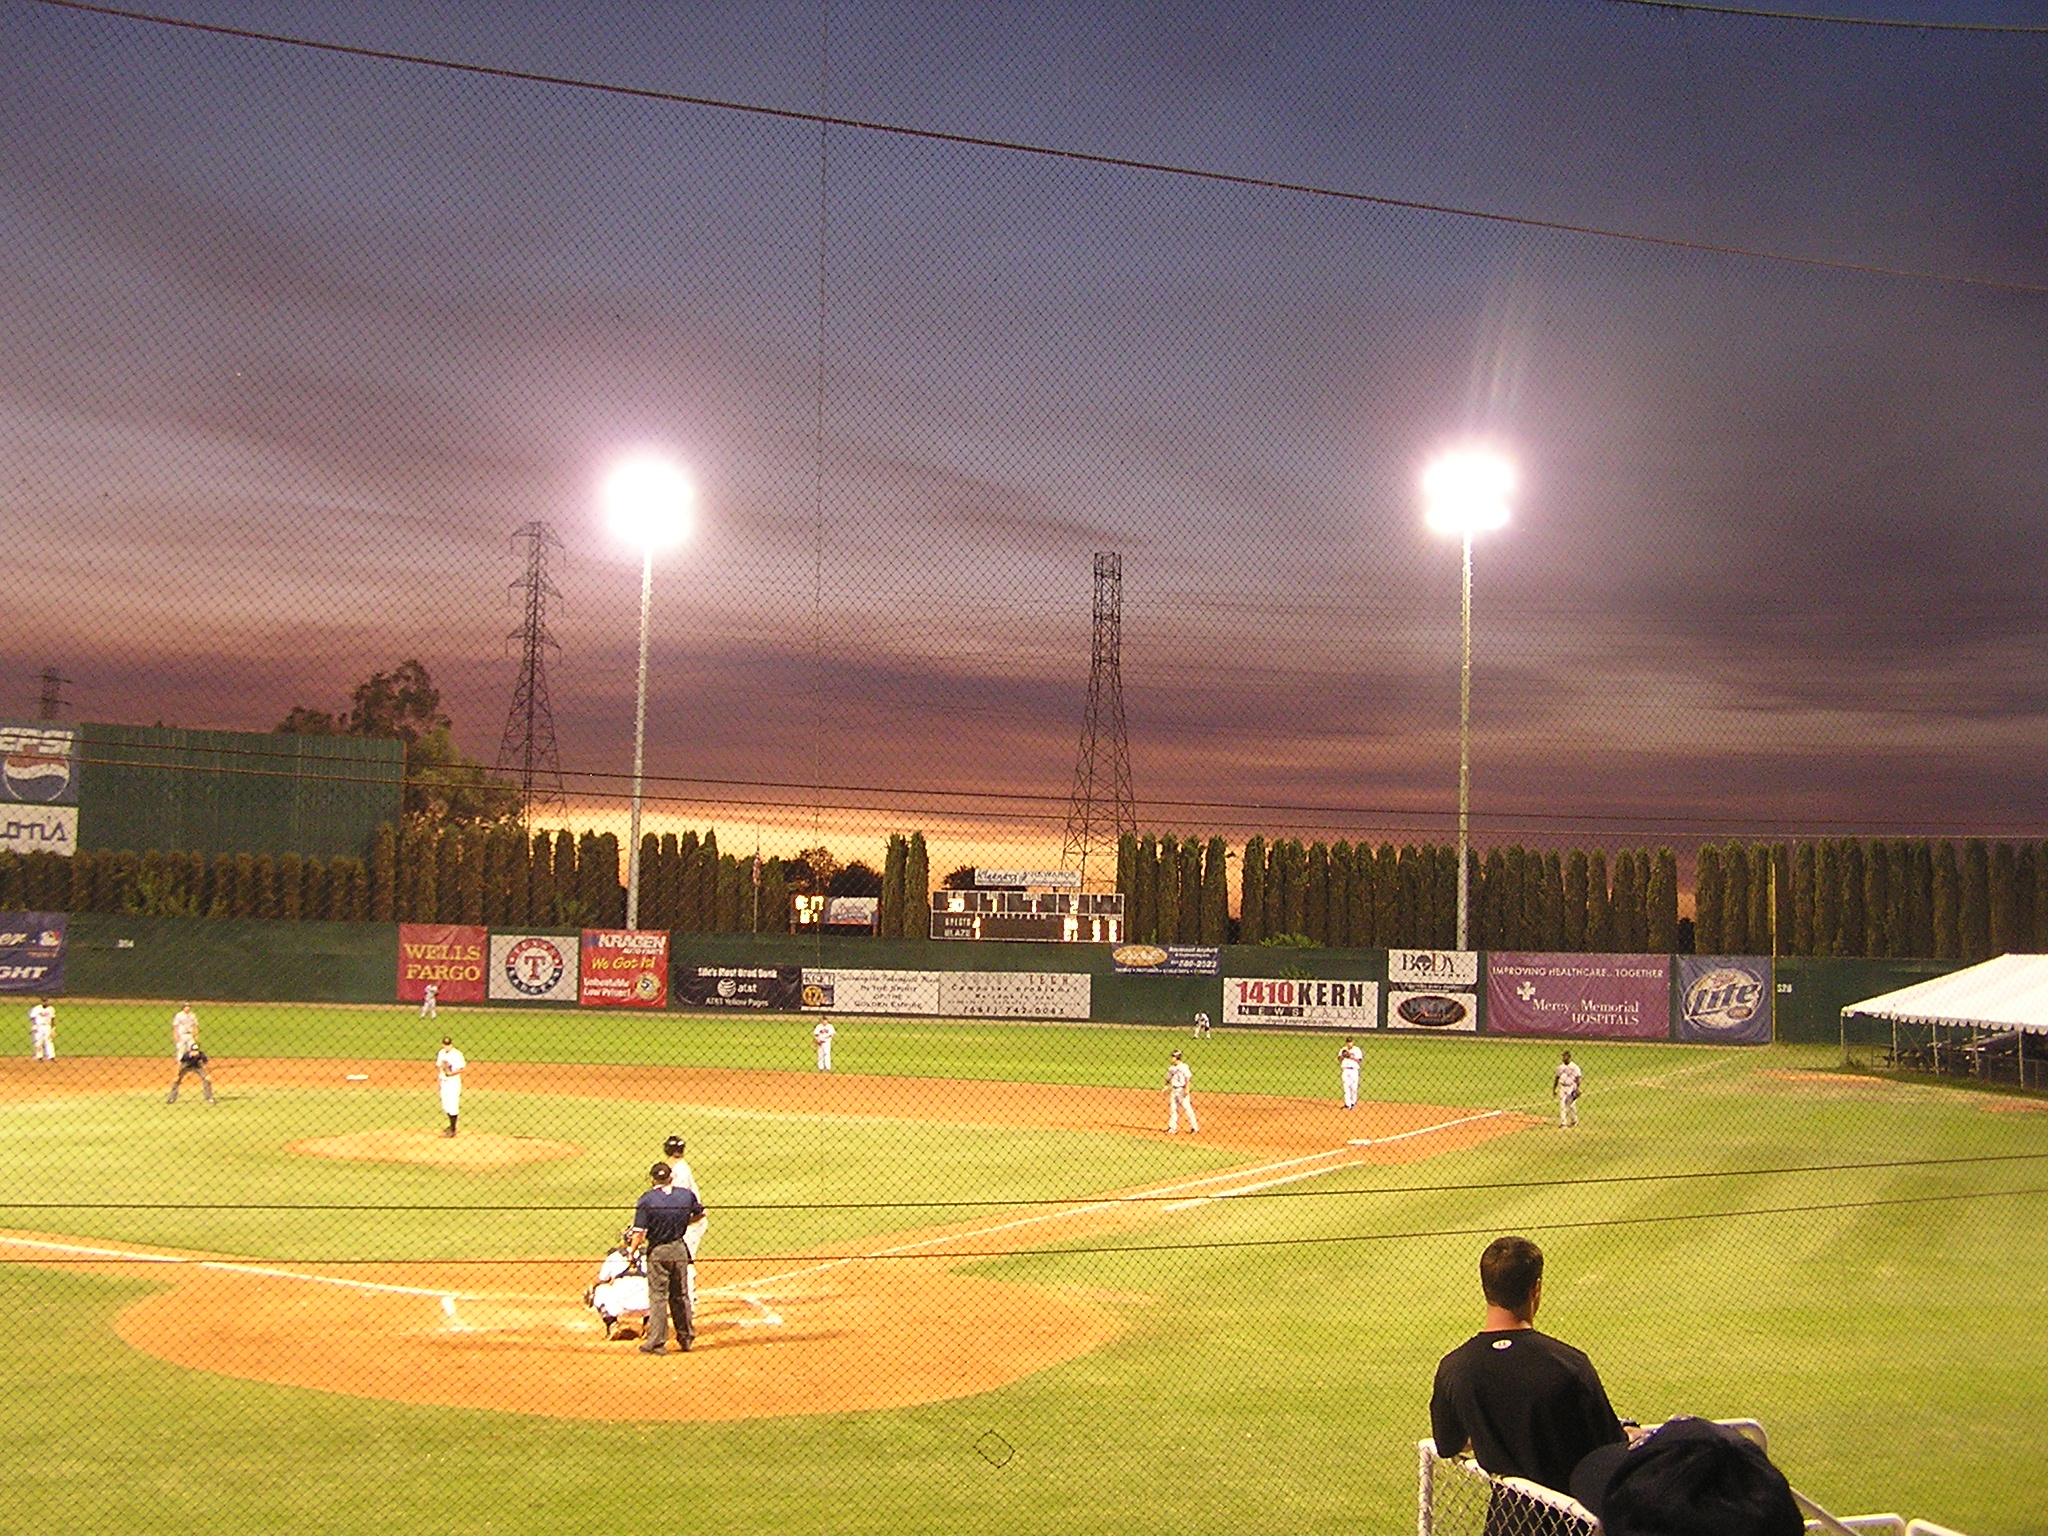 Sunset at Sam Lynn Ballpark - Bakersfield